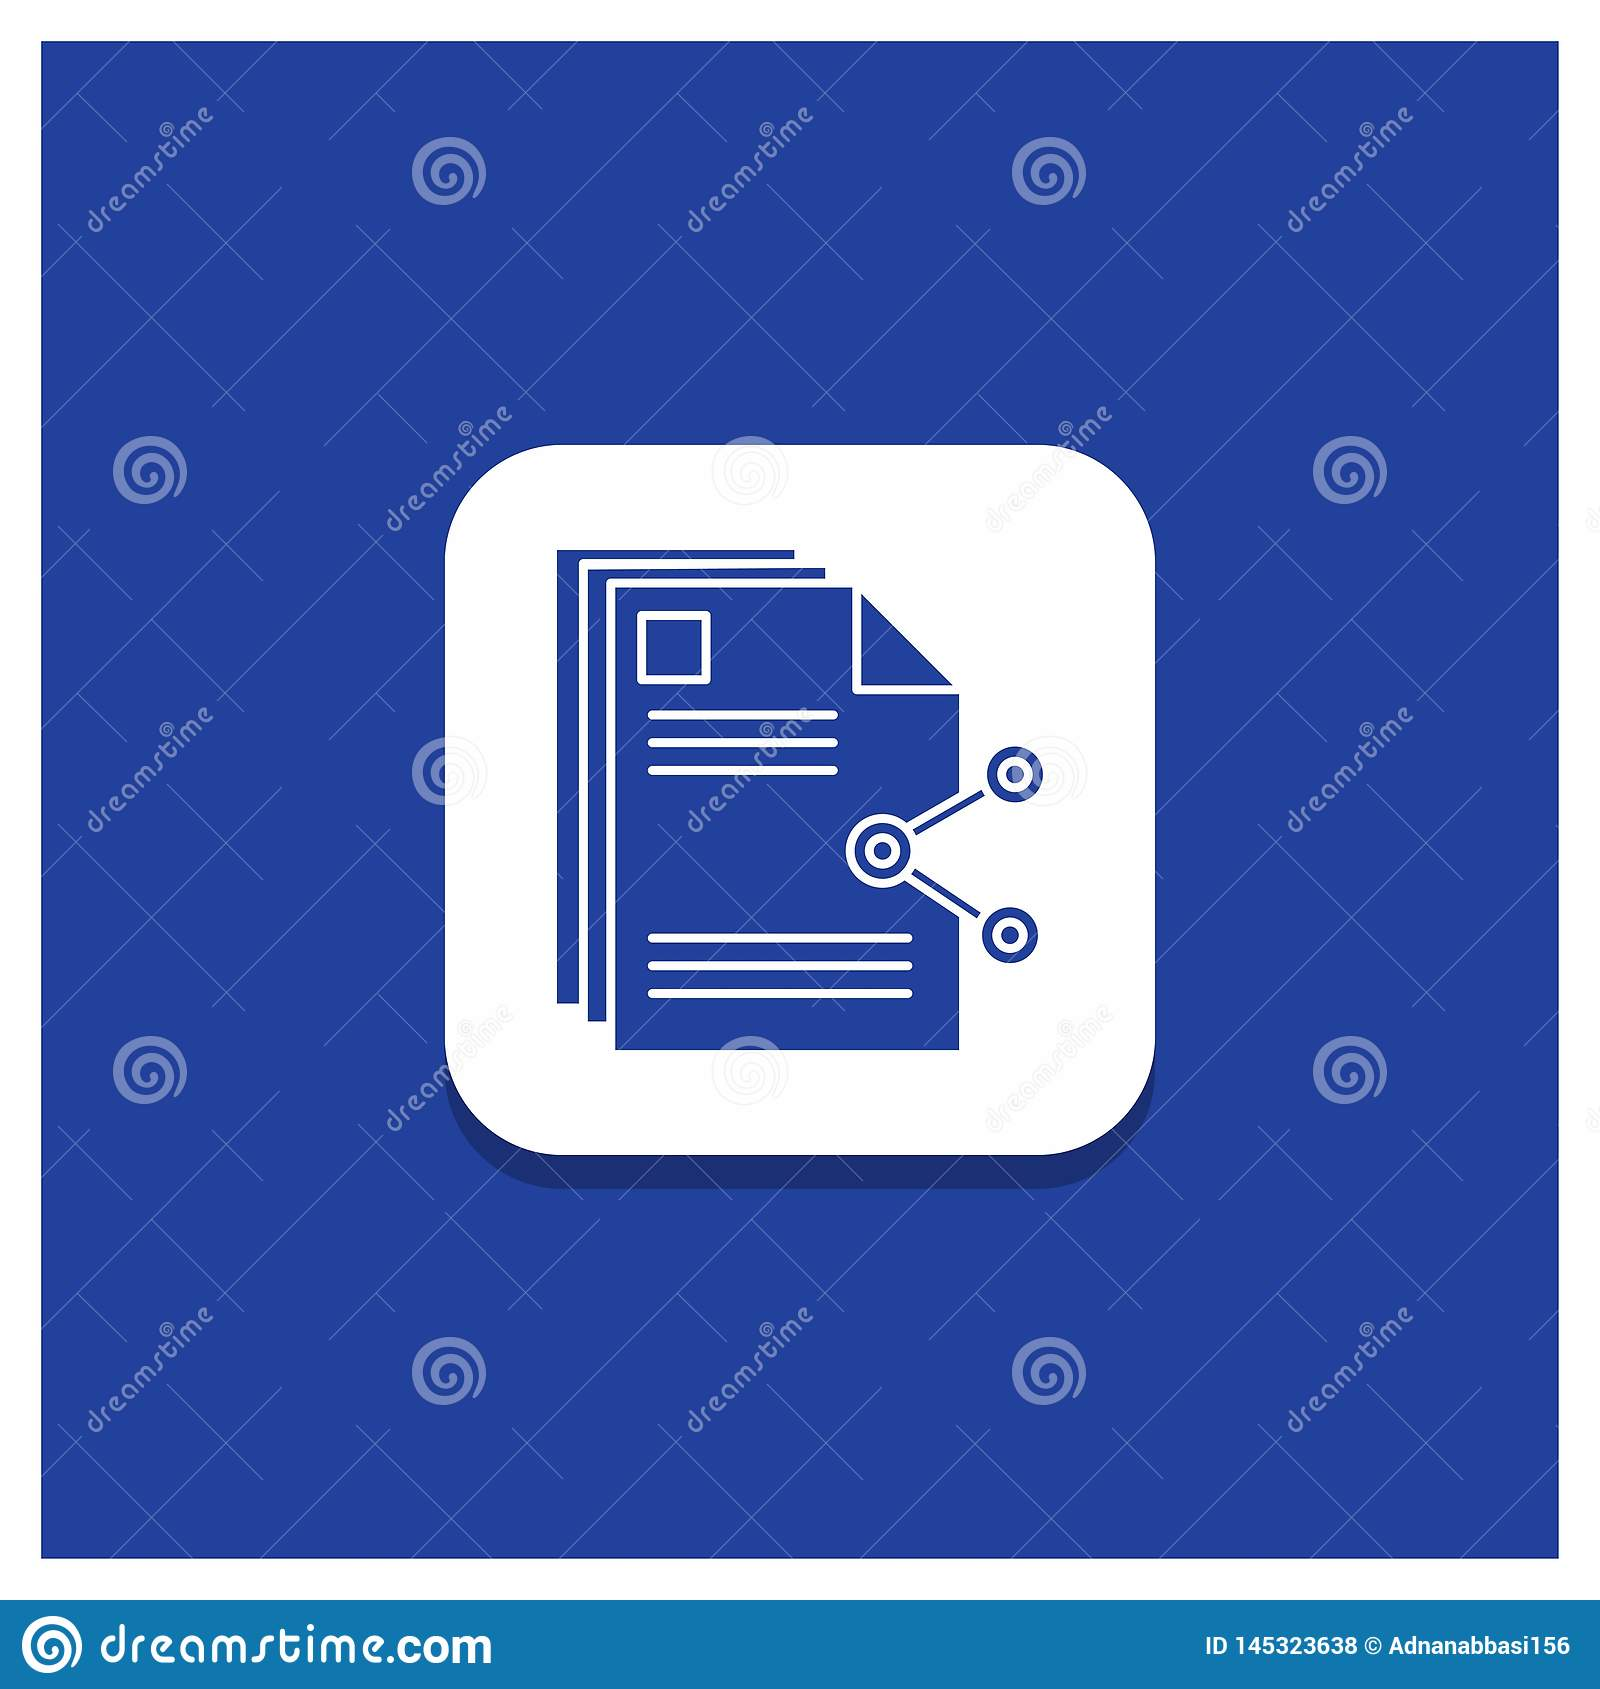 Blue Round Button for content, files, sharing, share, document Glyph icon